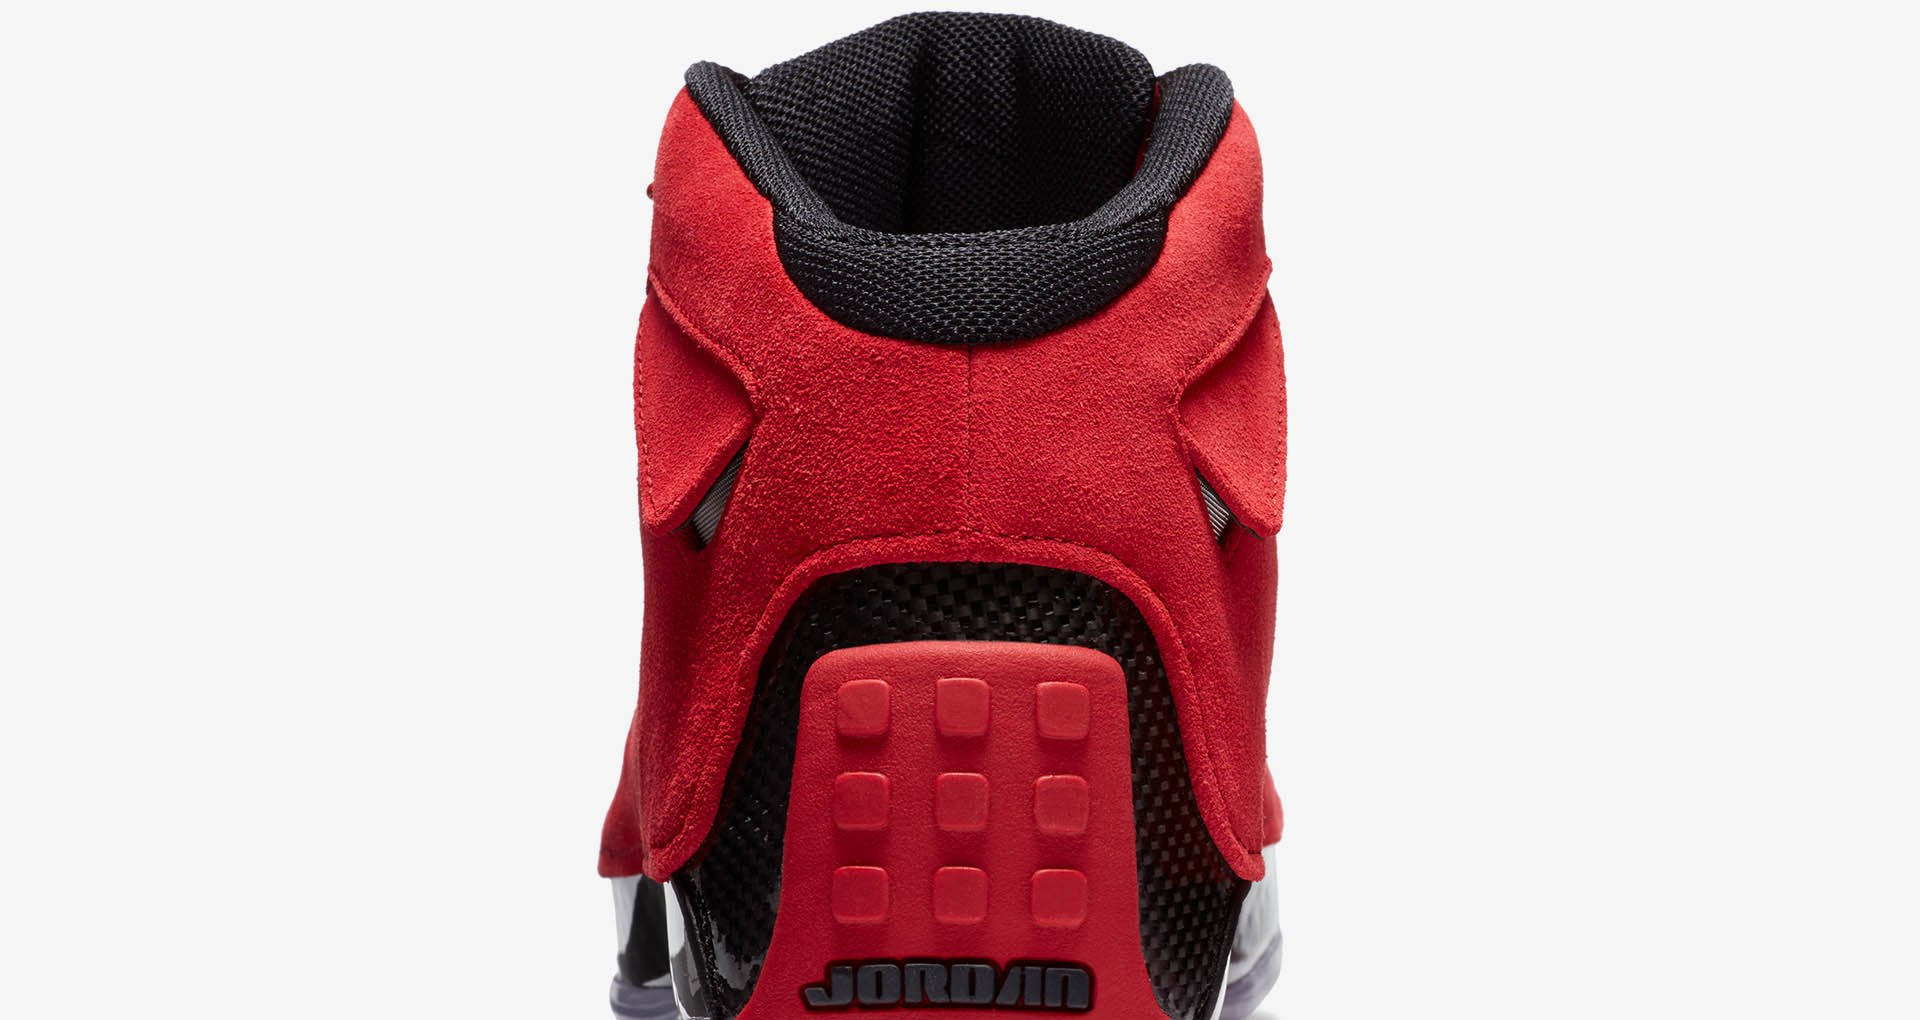 nike-air-jordan-18-gym-red-black-aa2494-601-release-20180407